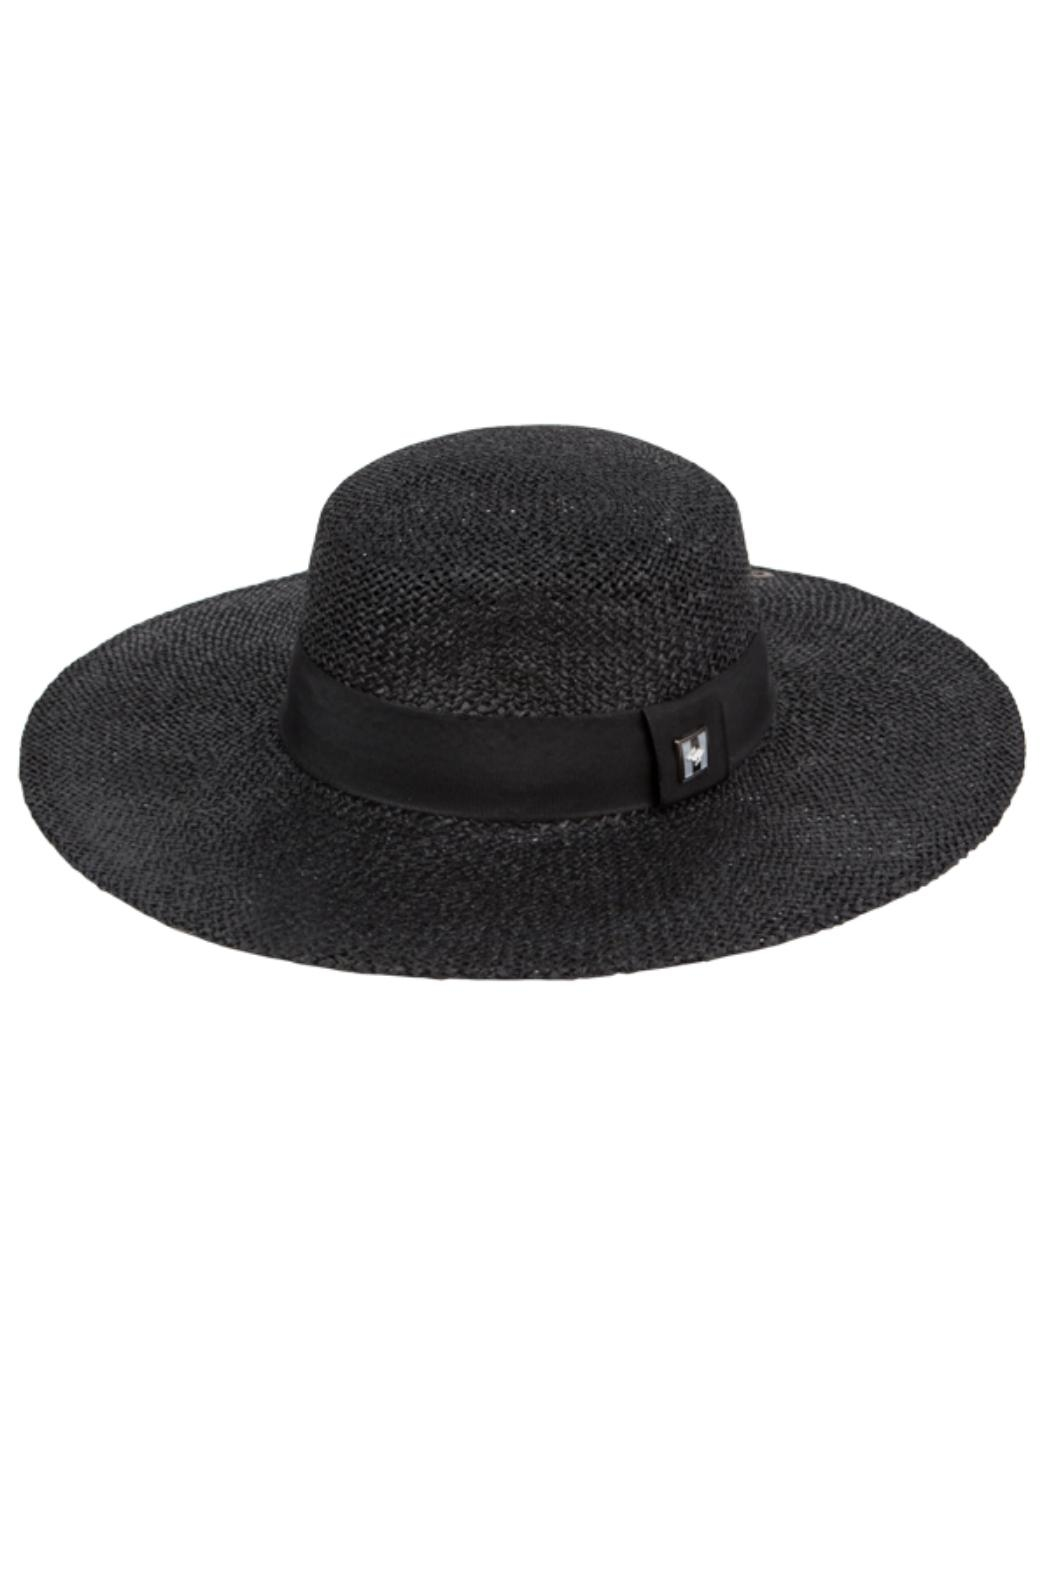 Peter Grimm Straw Boater Hat - Main Image